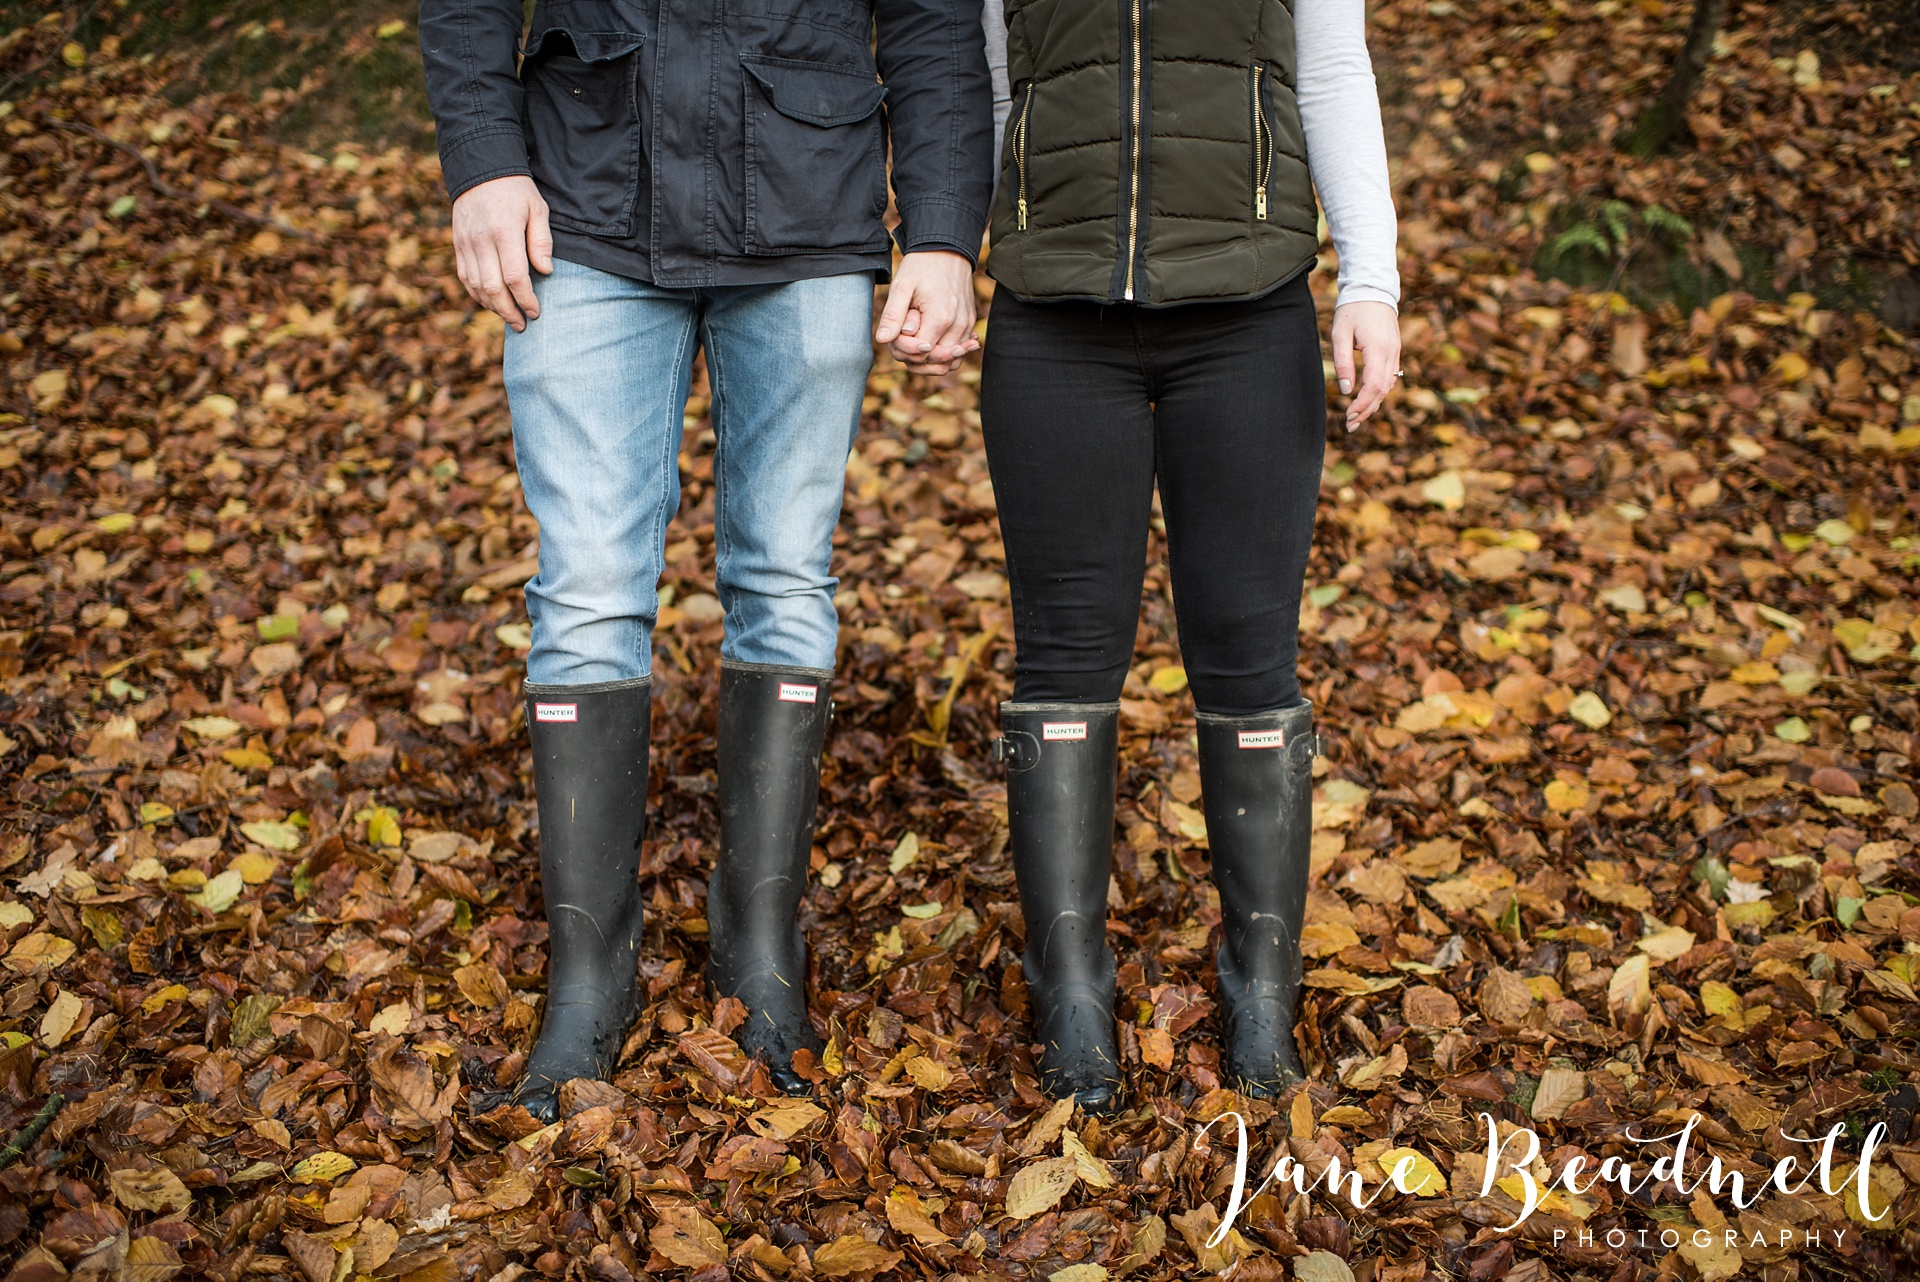 engagement-shoot-yorkshire-wedding-photographer-jane-beadnell-photography-uk-and-destination-wedding-photographer-engagement-shoot_0016